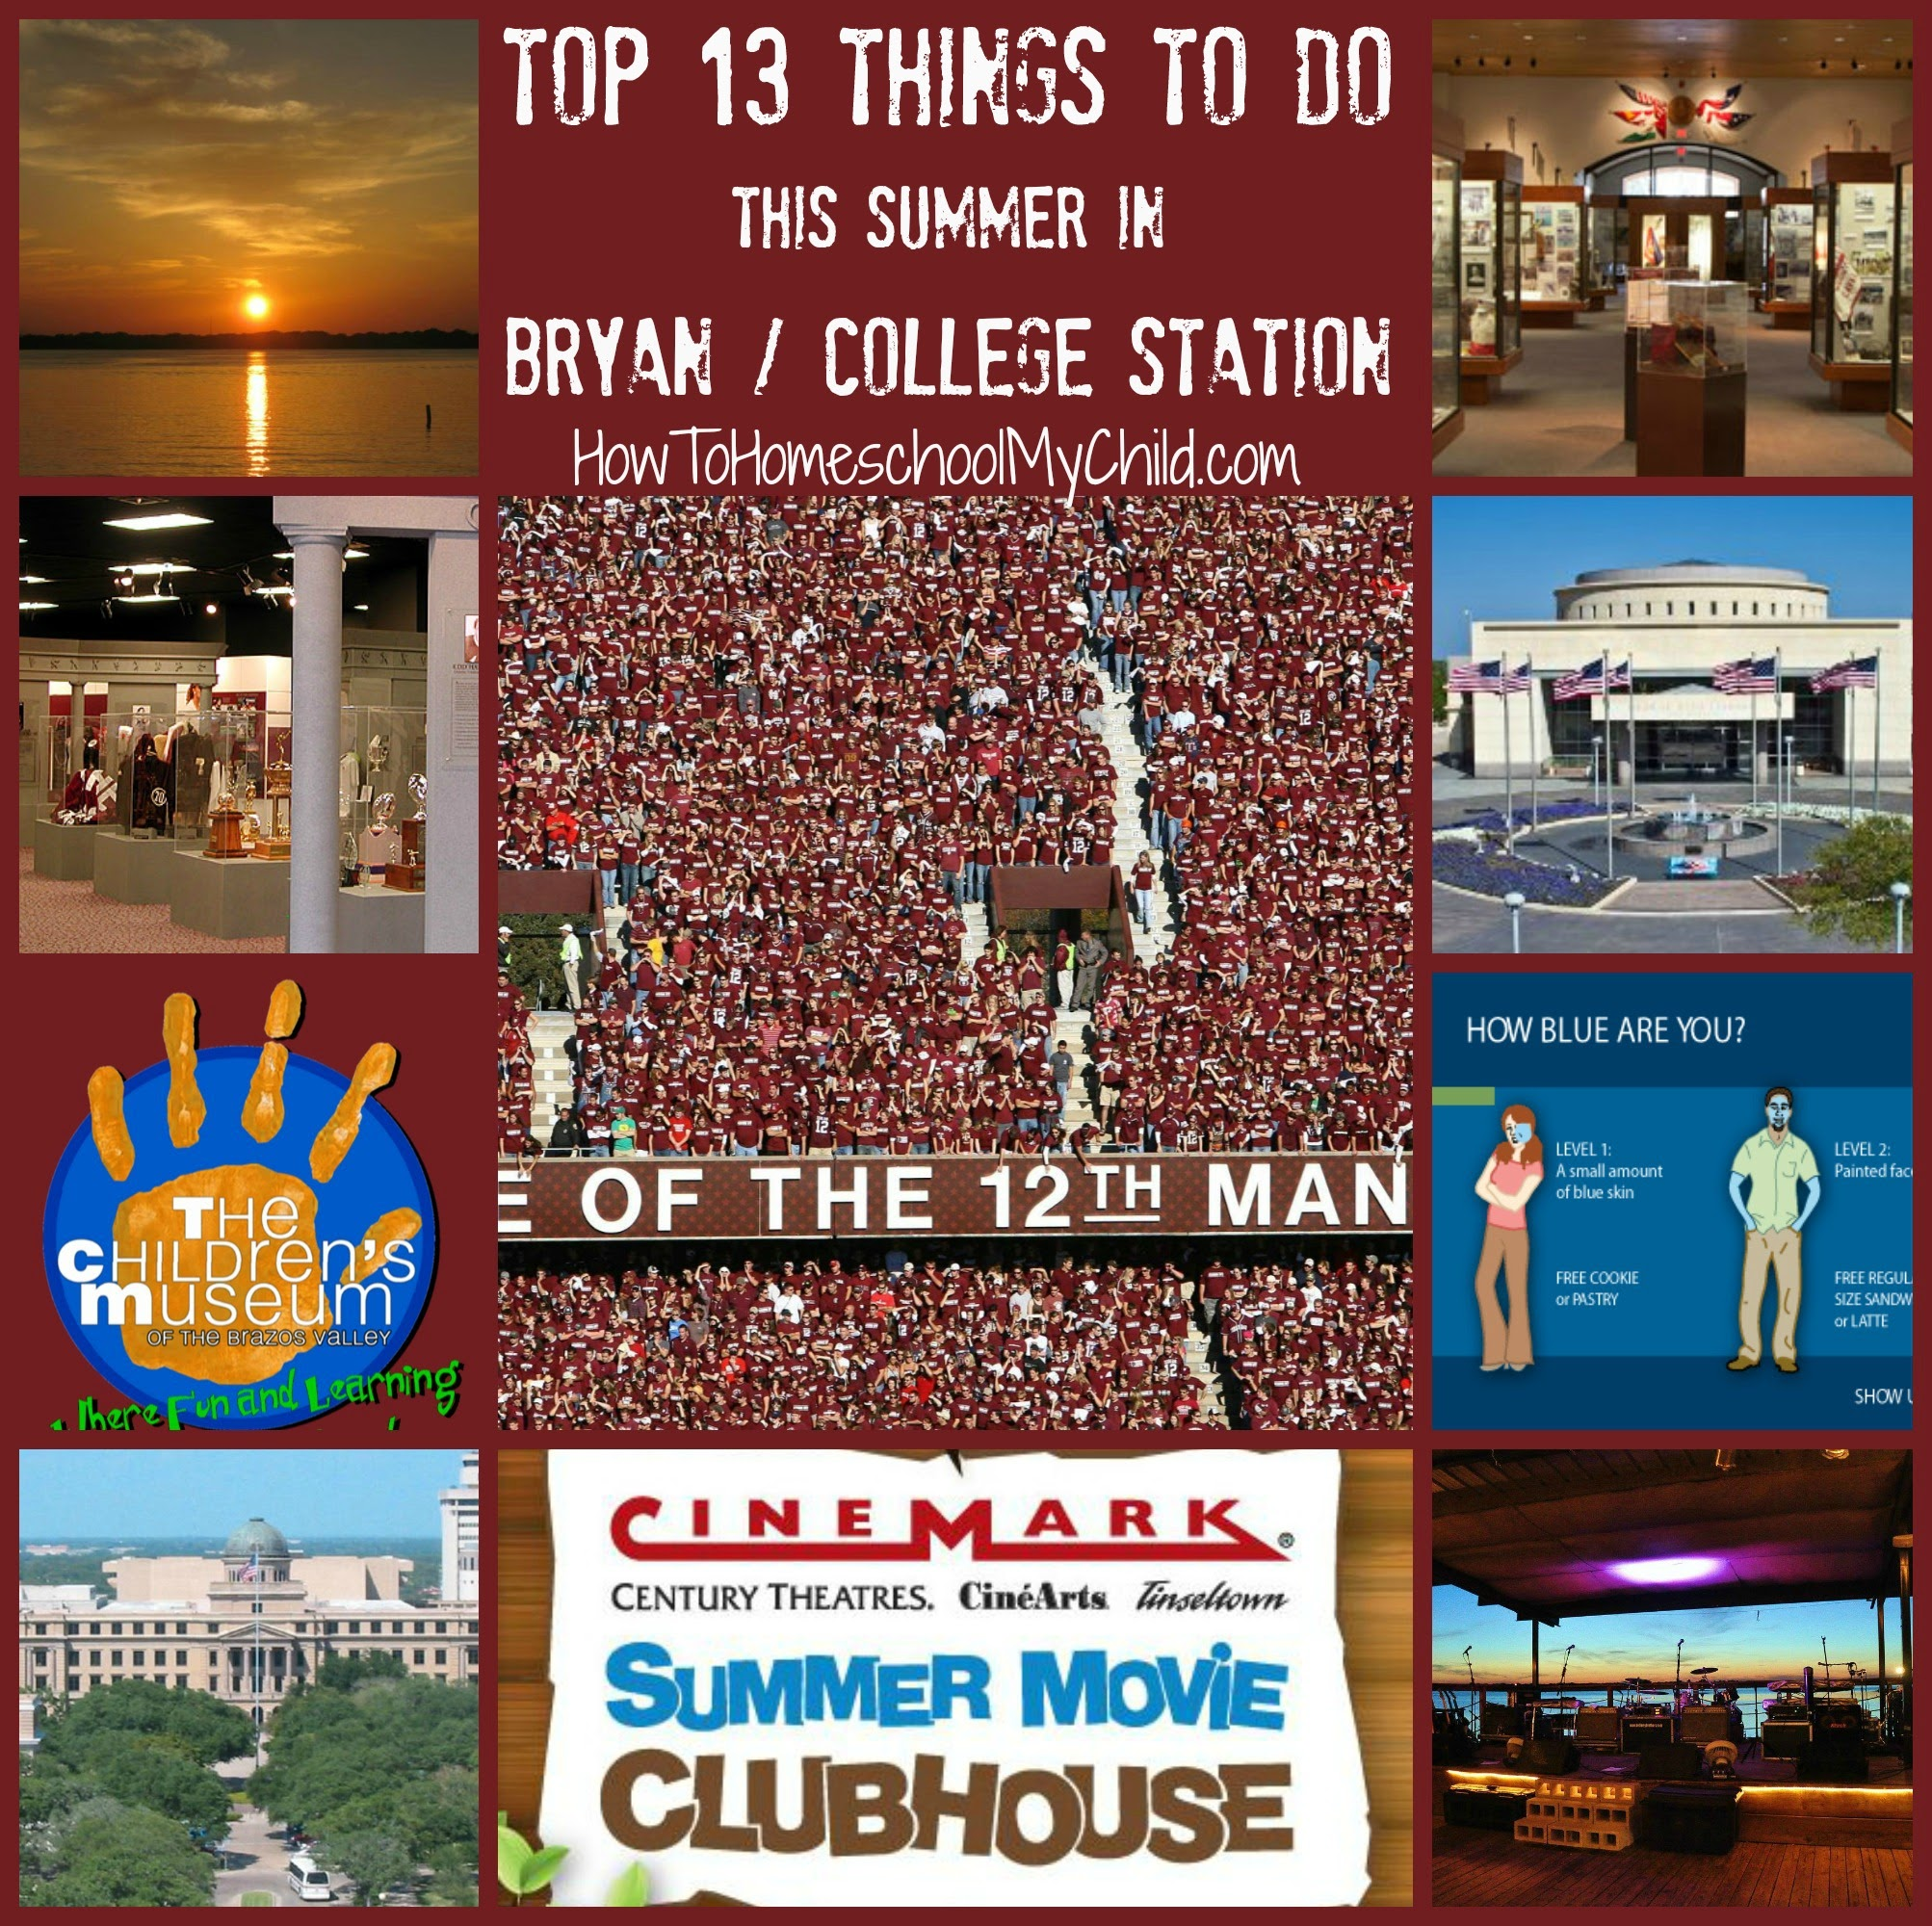 fun things to do in texas - bryan - collegestation from How to Homeschool My Child.com